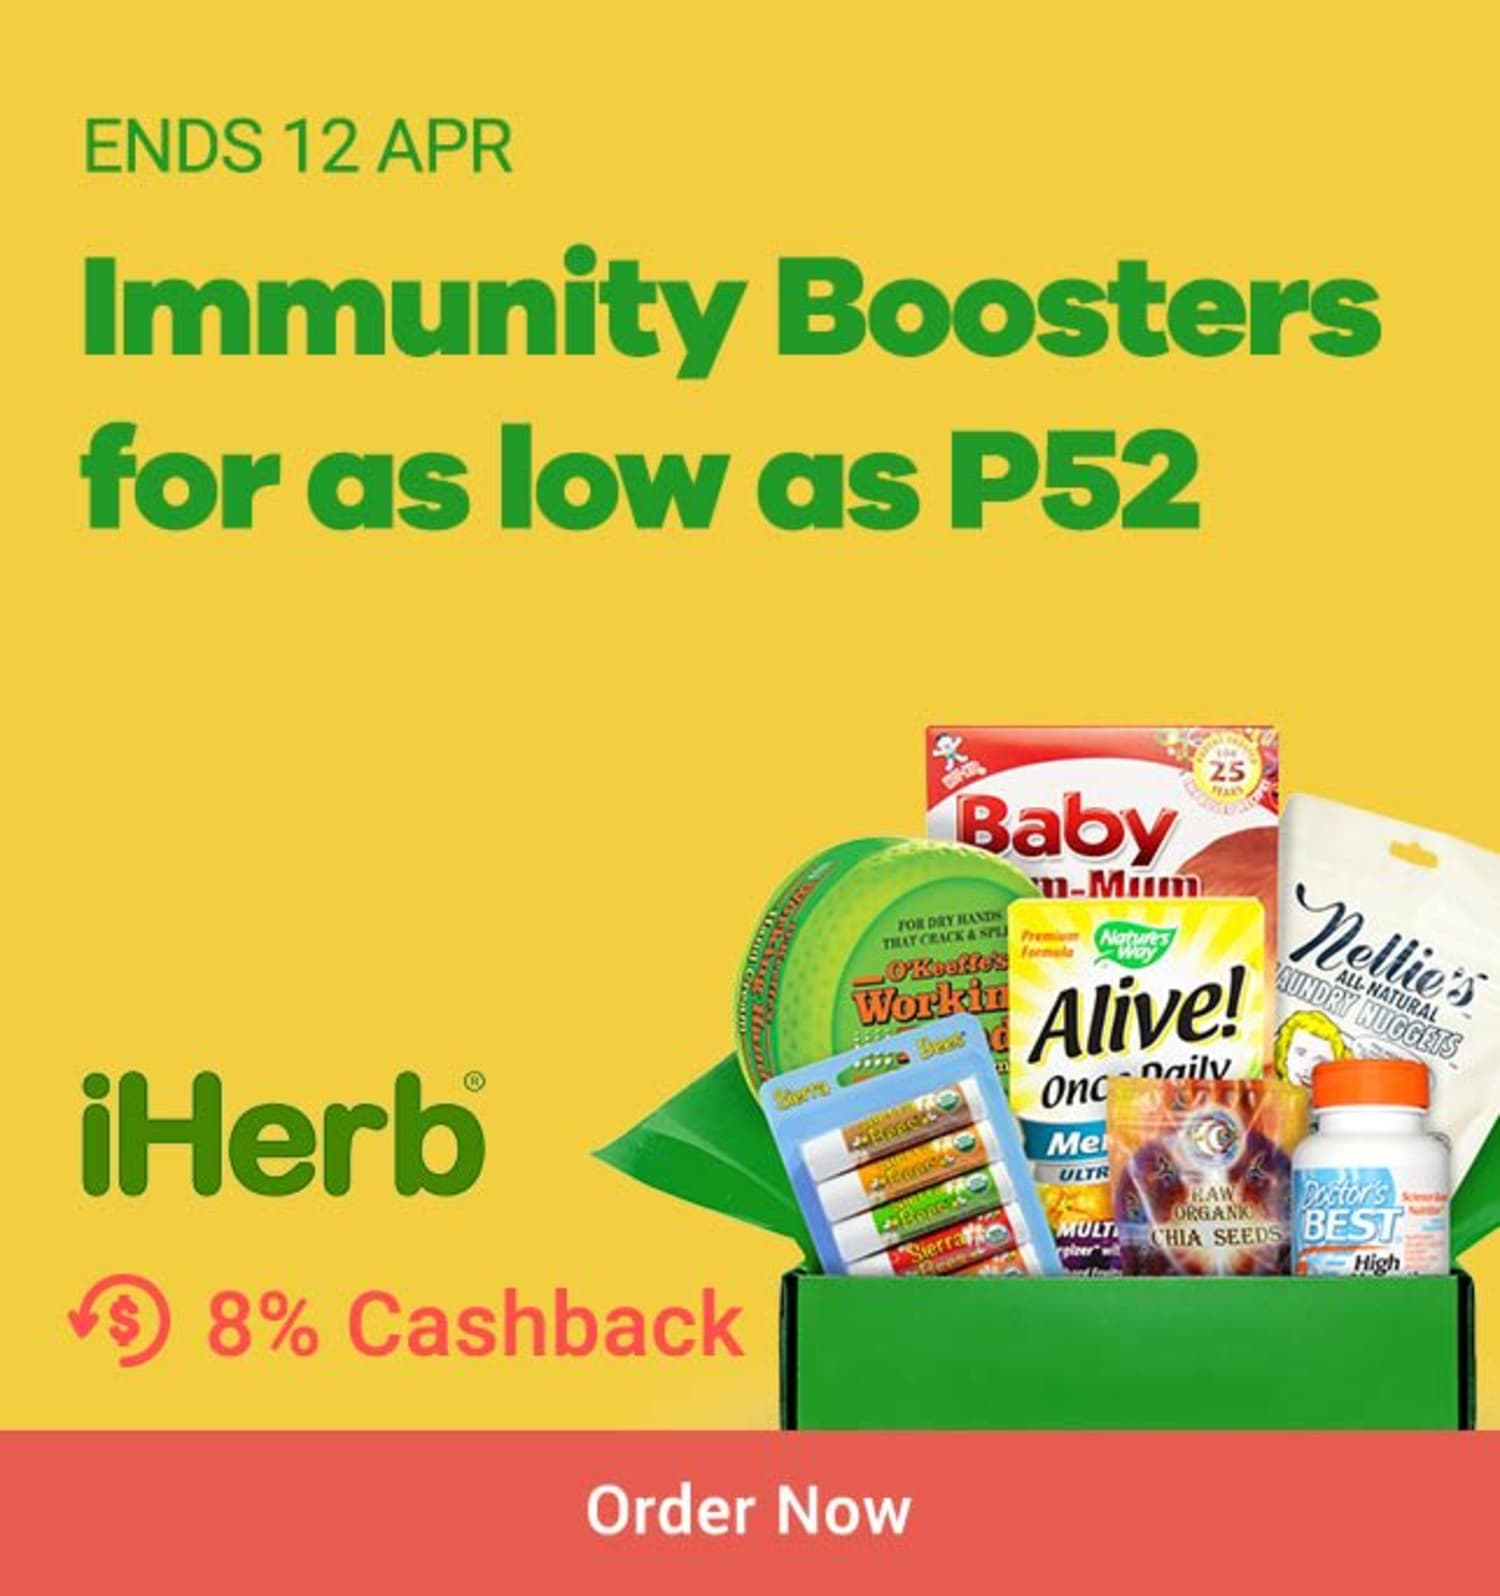 iHerb: Immunity Boosters for as low as P52